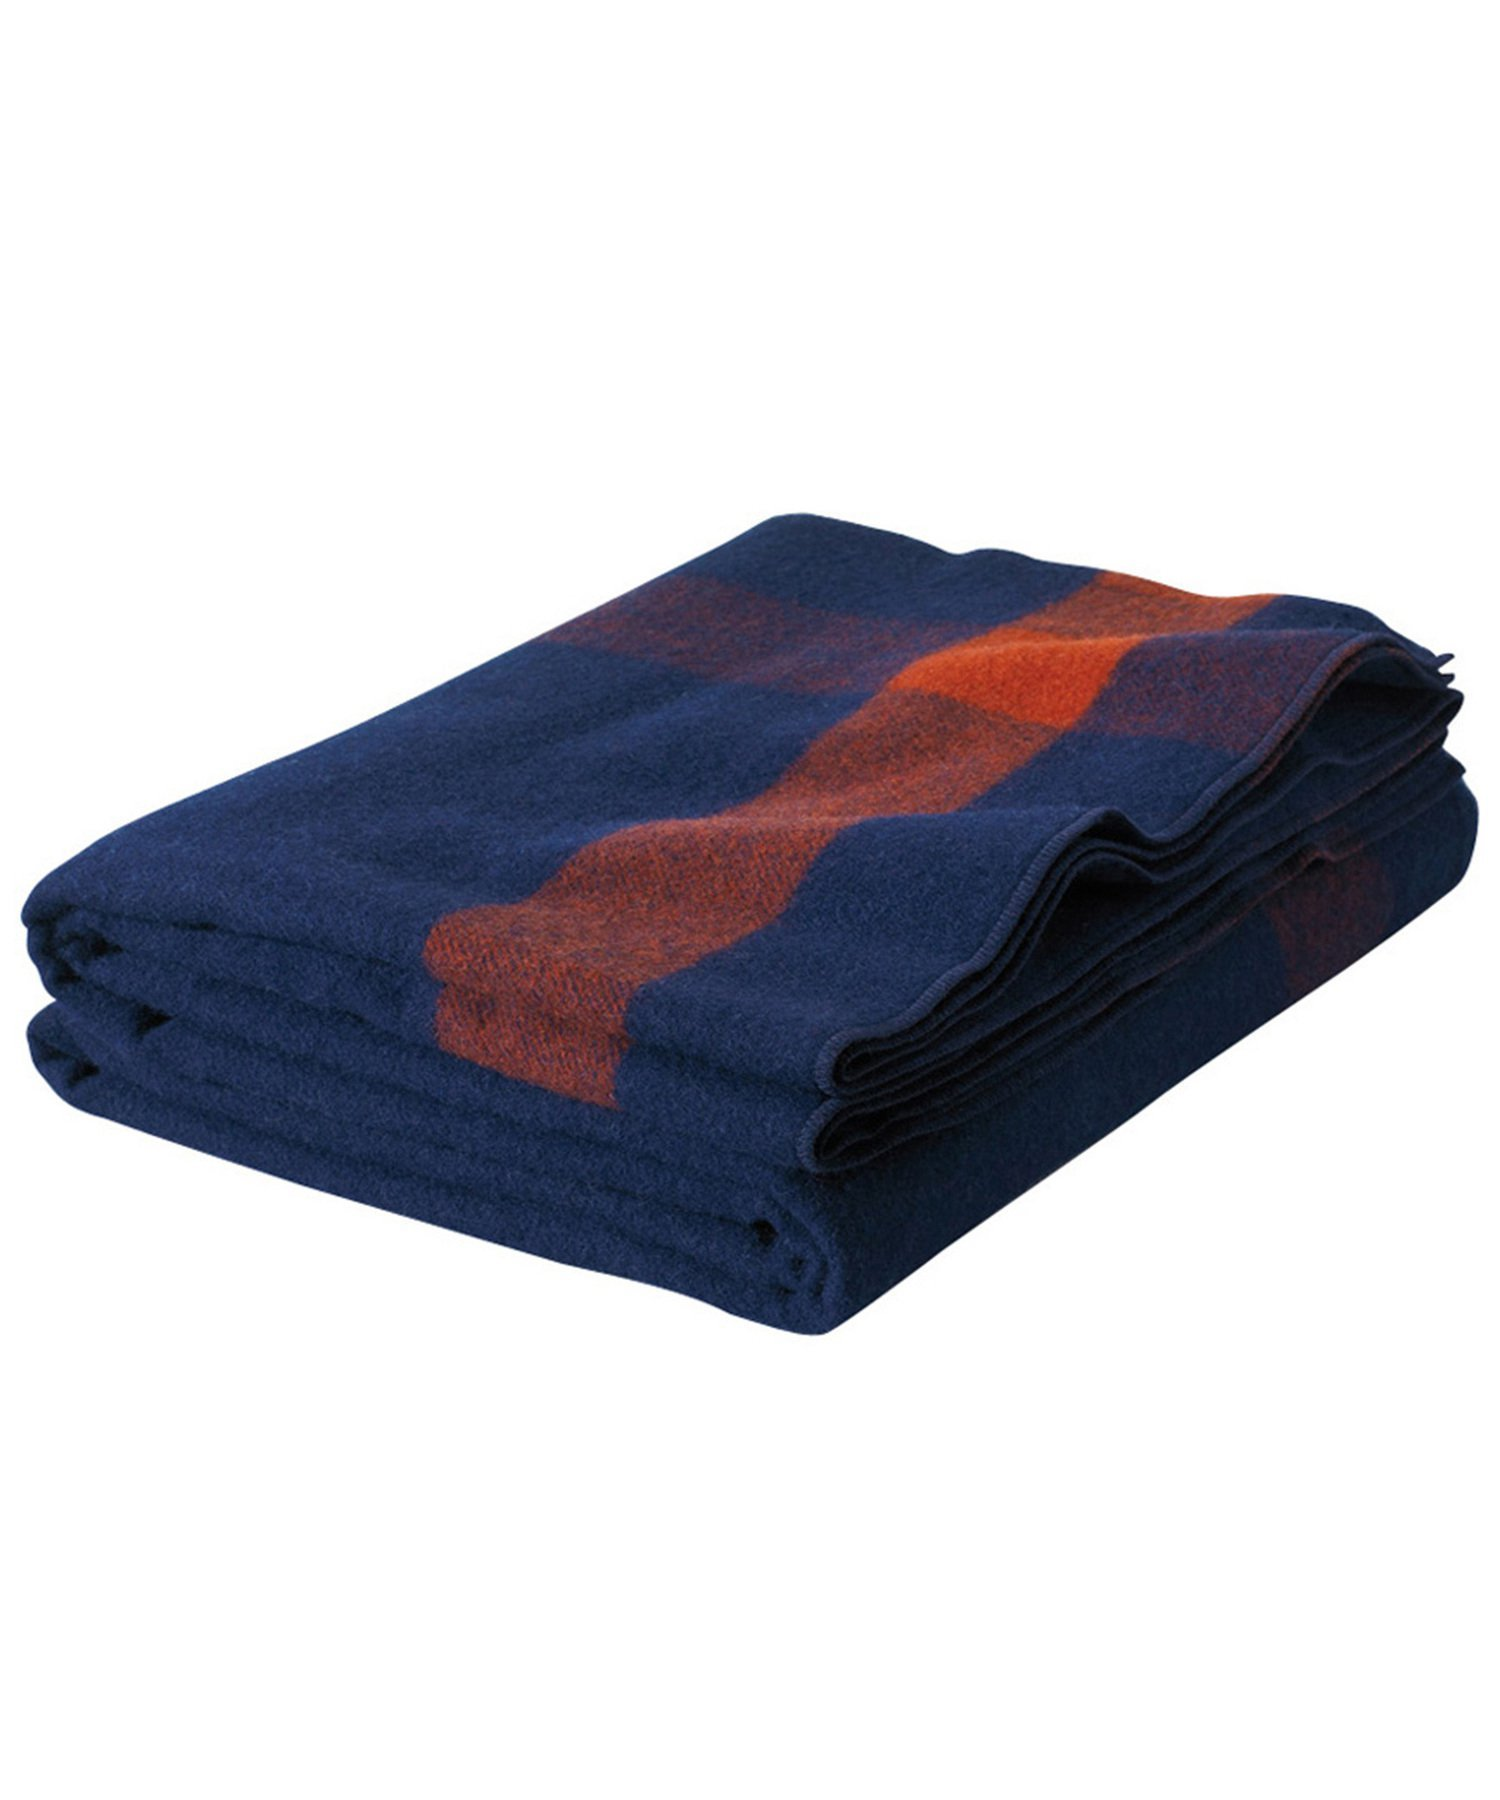 Woolrich 66 by 80-Inch Cavalry Blanket